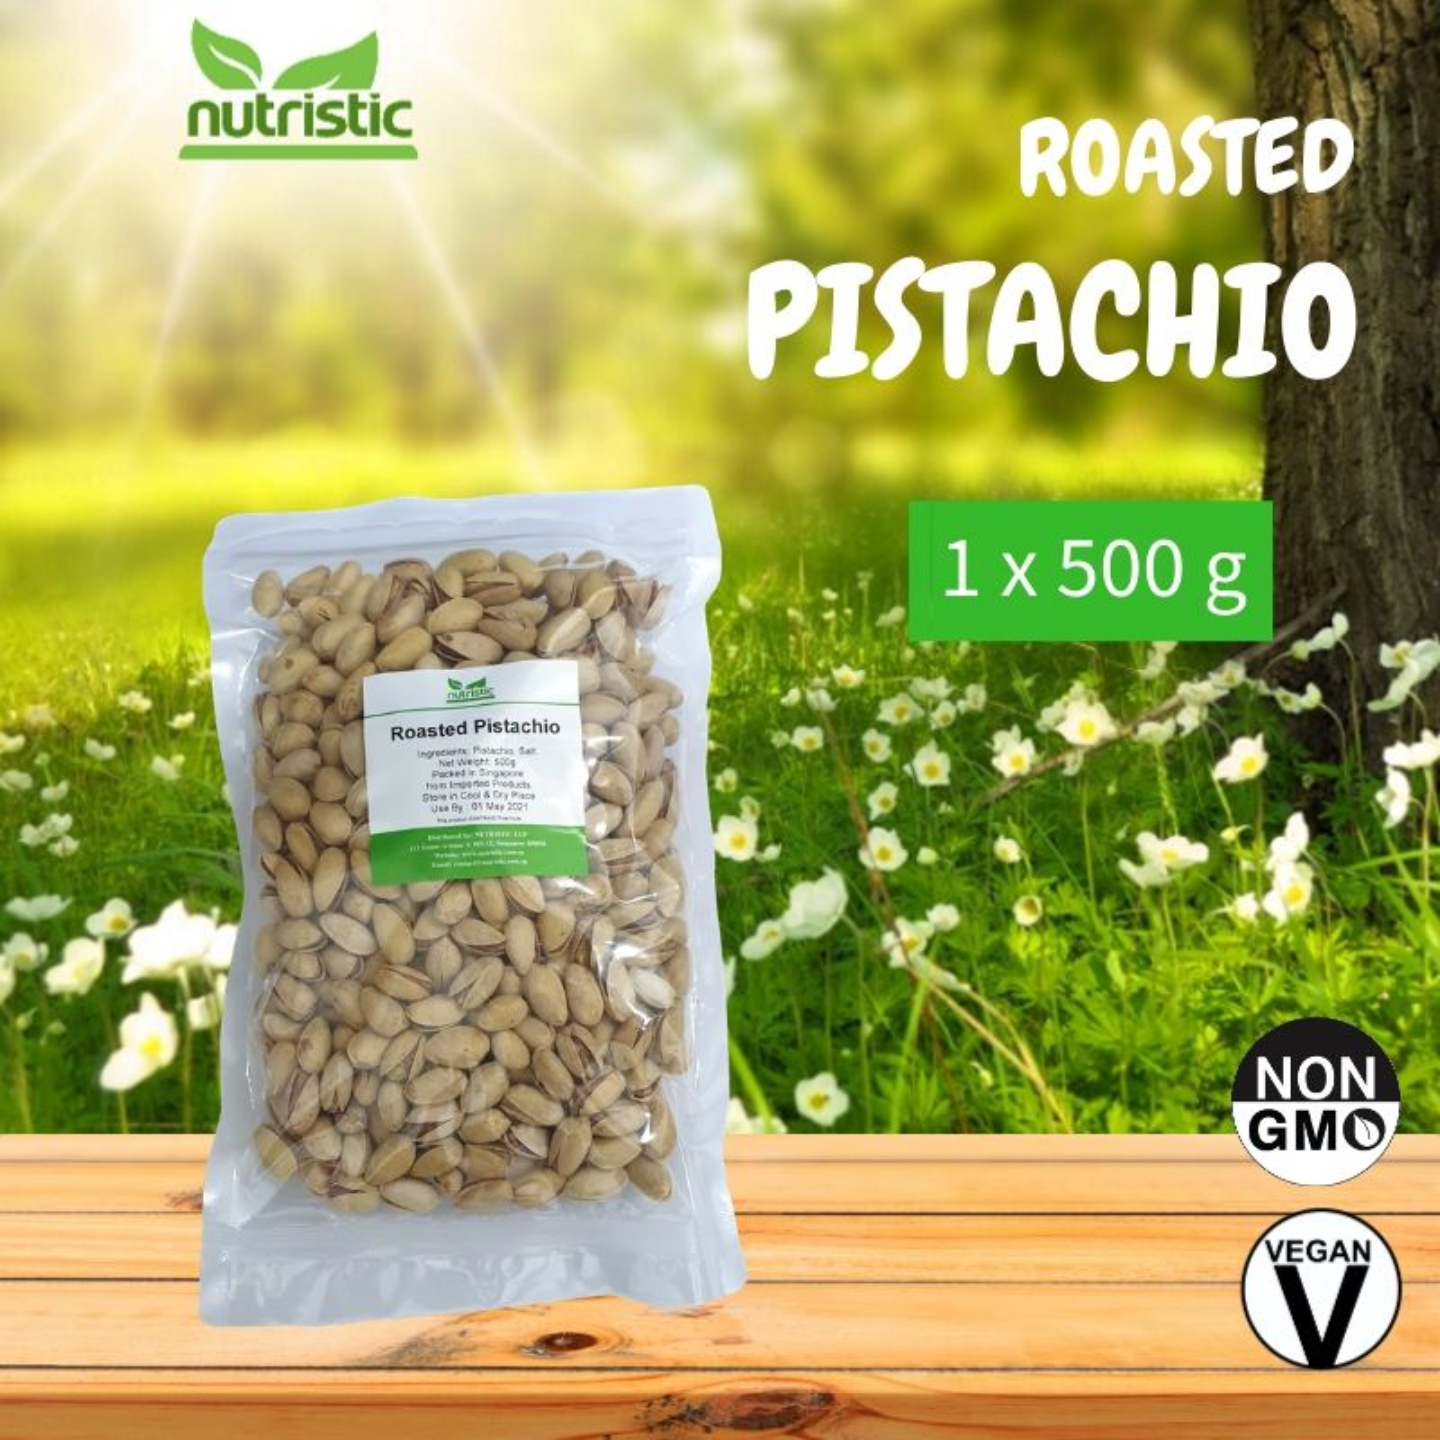 Roasted Pistachio Salted & Unbleached 500g - Value Pack